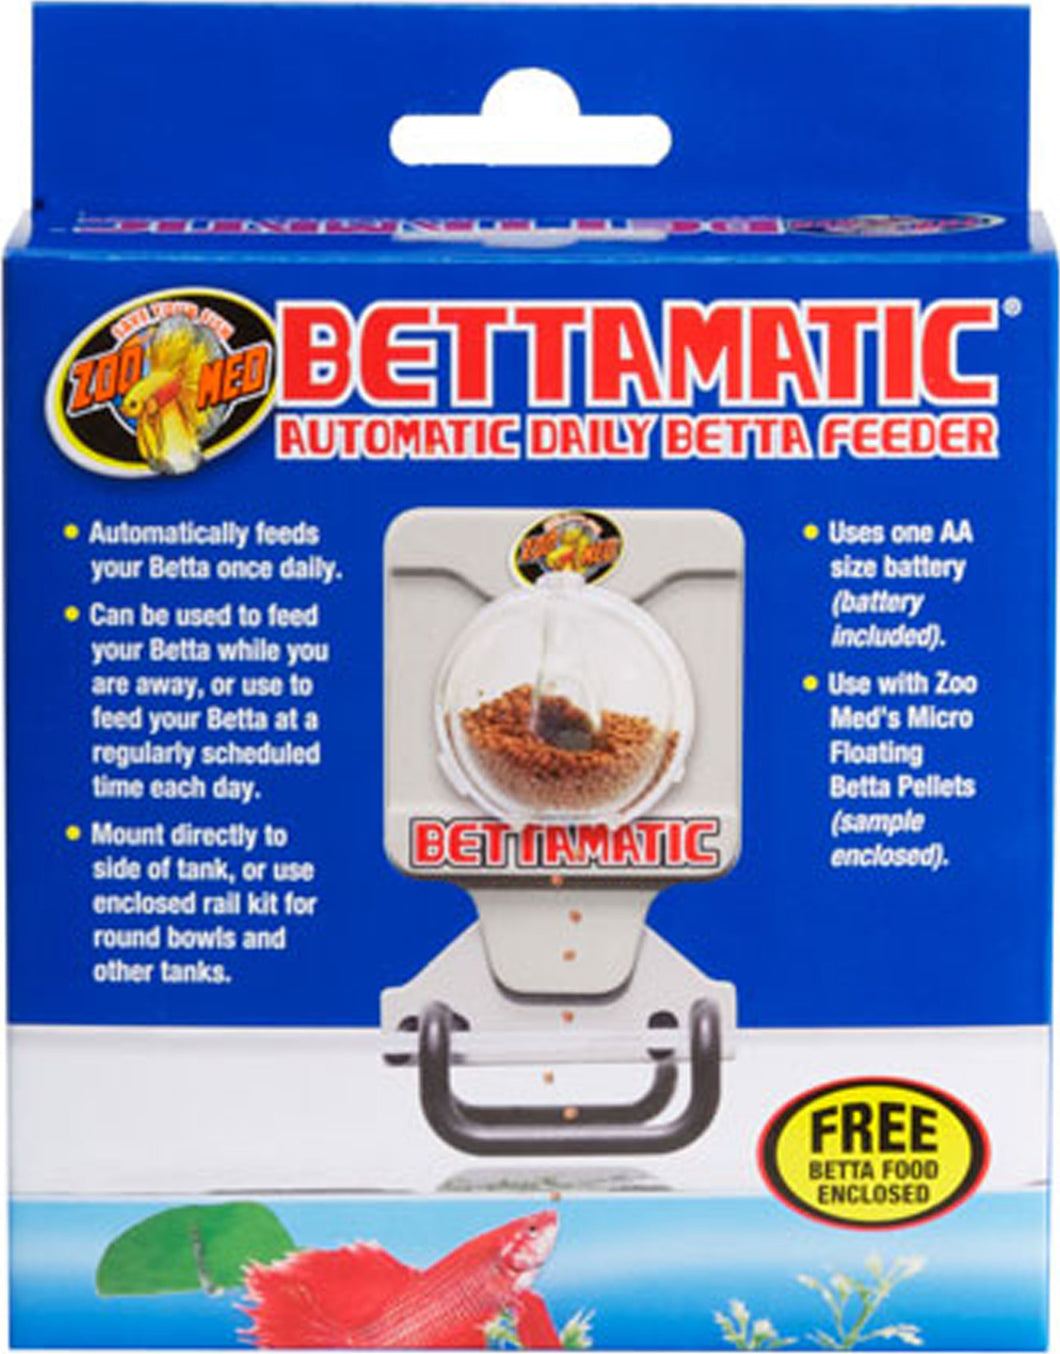 Bettamatic Automatic Daily Betta Feeder